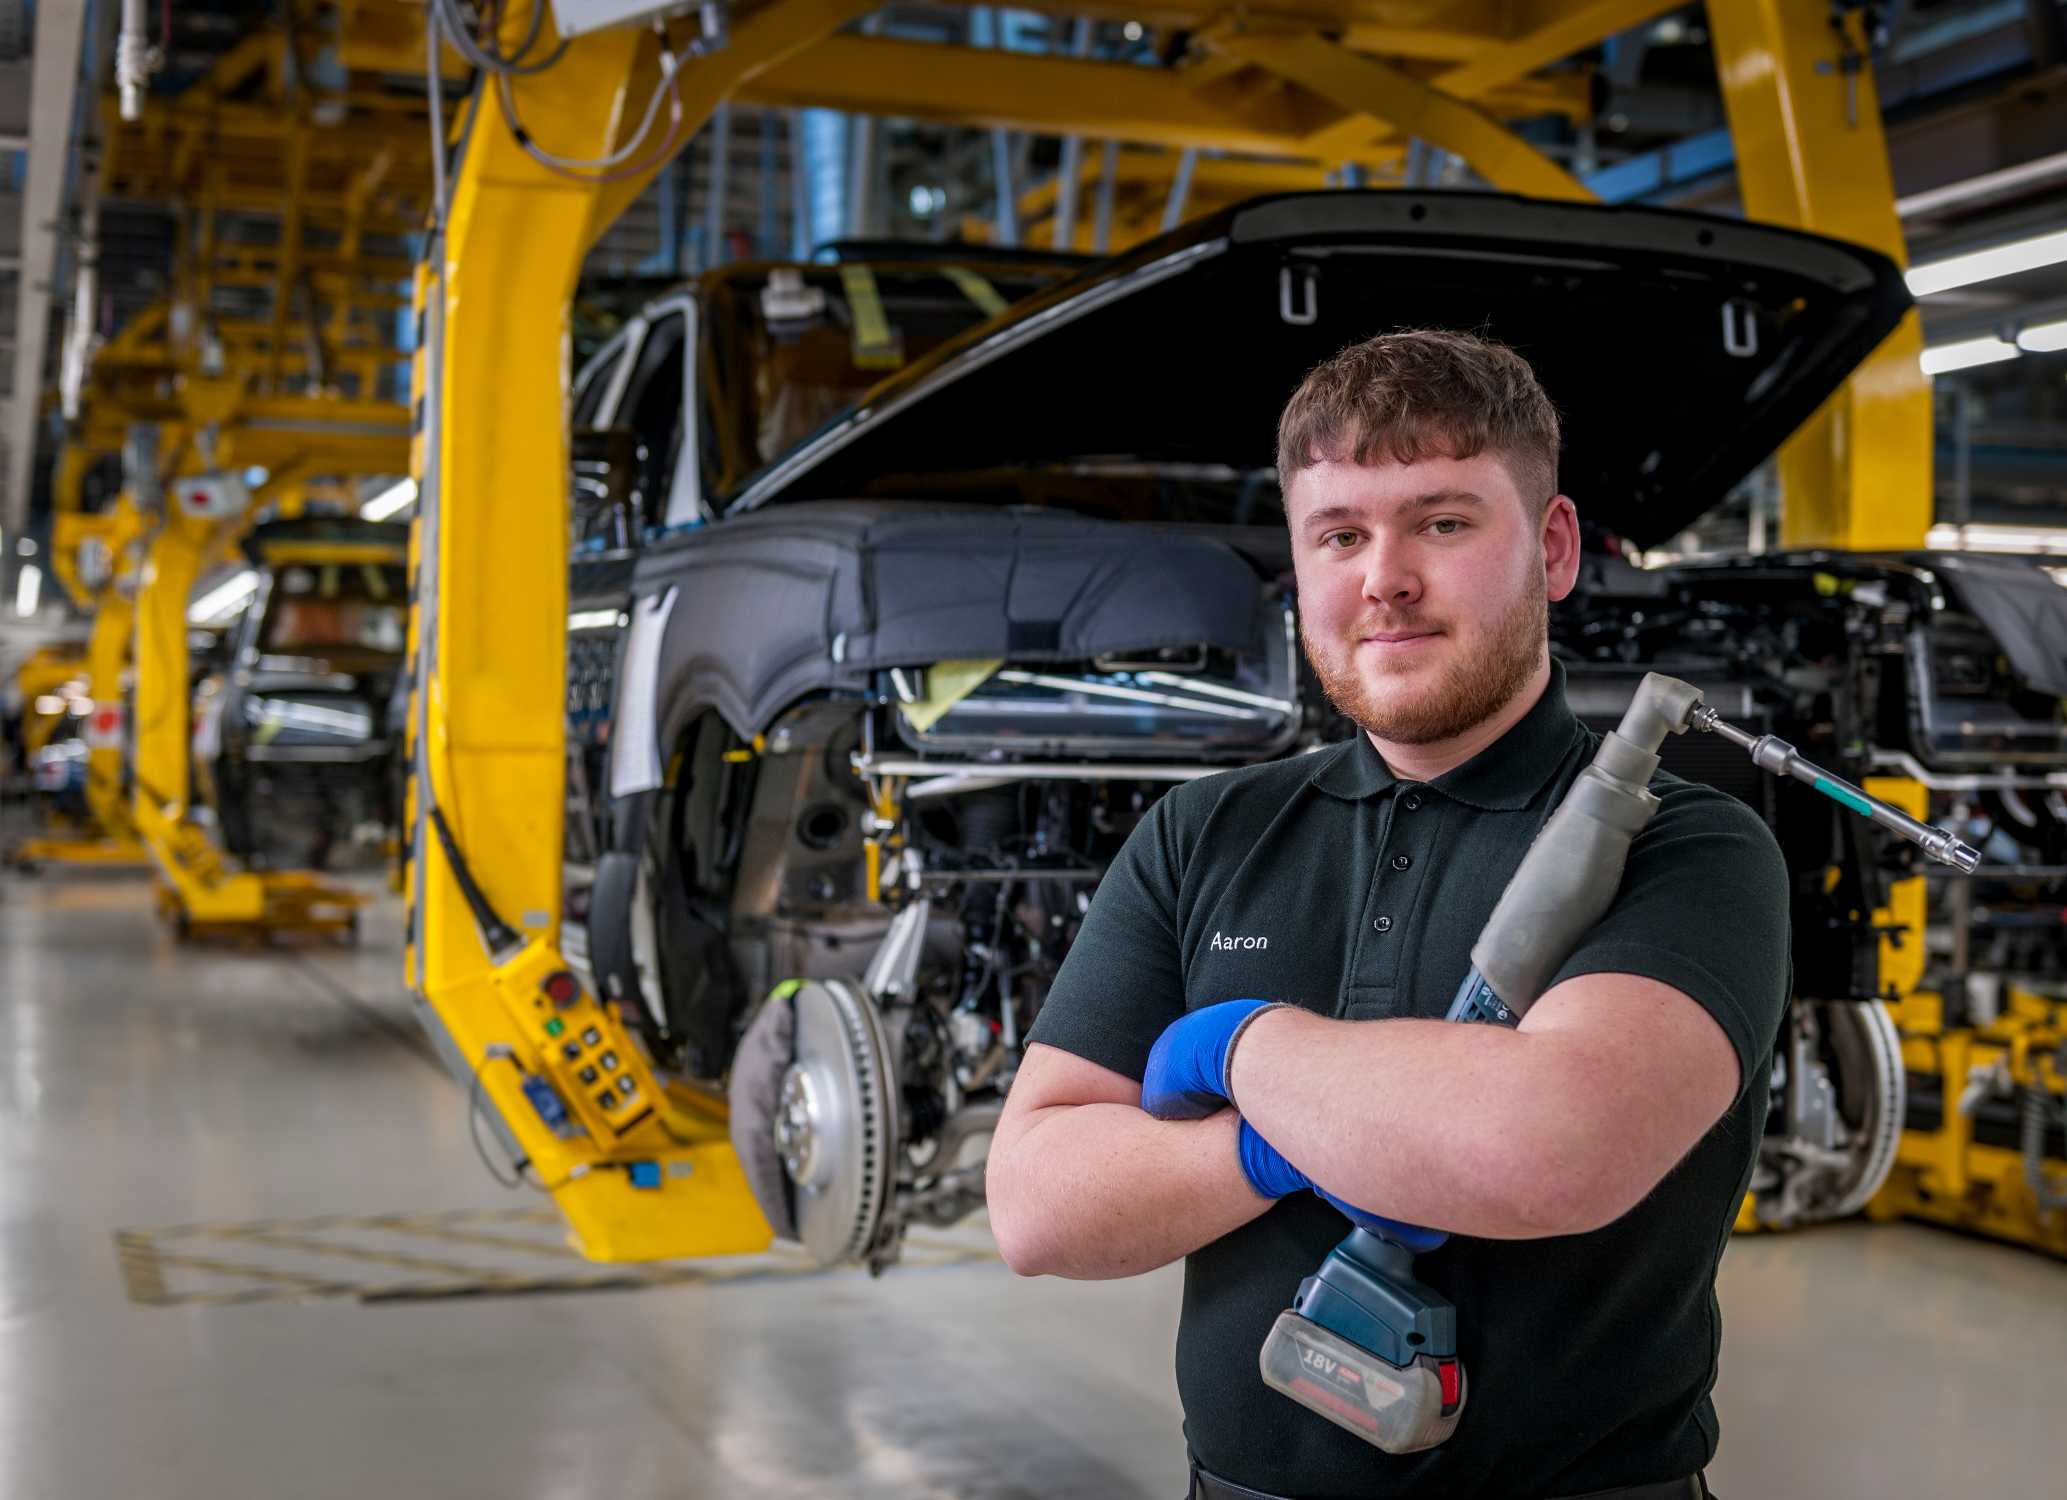 AARON SMITH, ROLLS-ROYCE MOTOR CARS APPRENTICE, ASSEMBLY